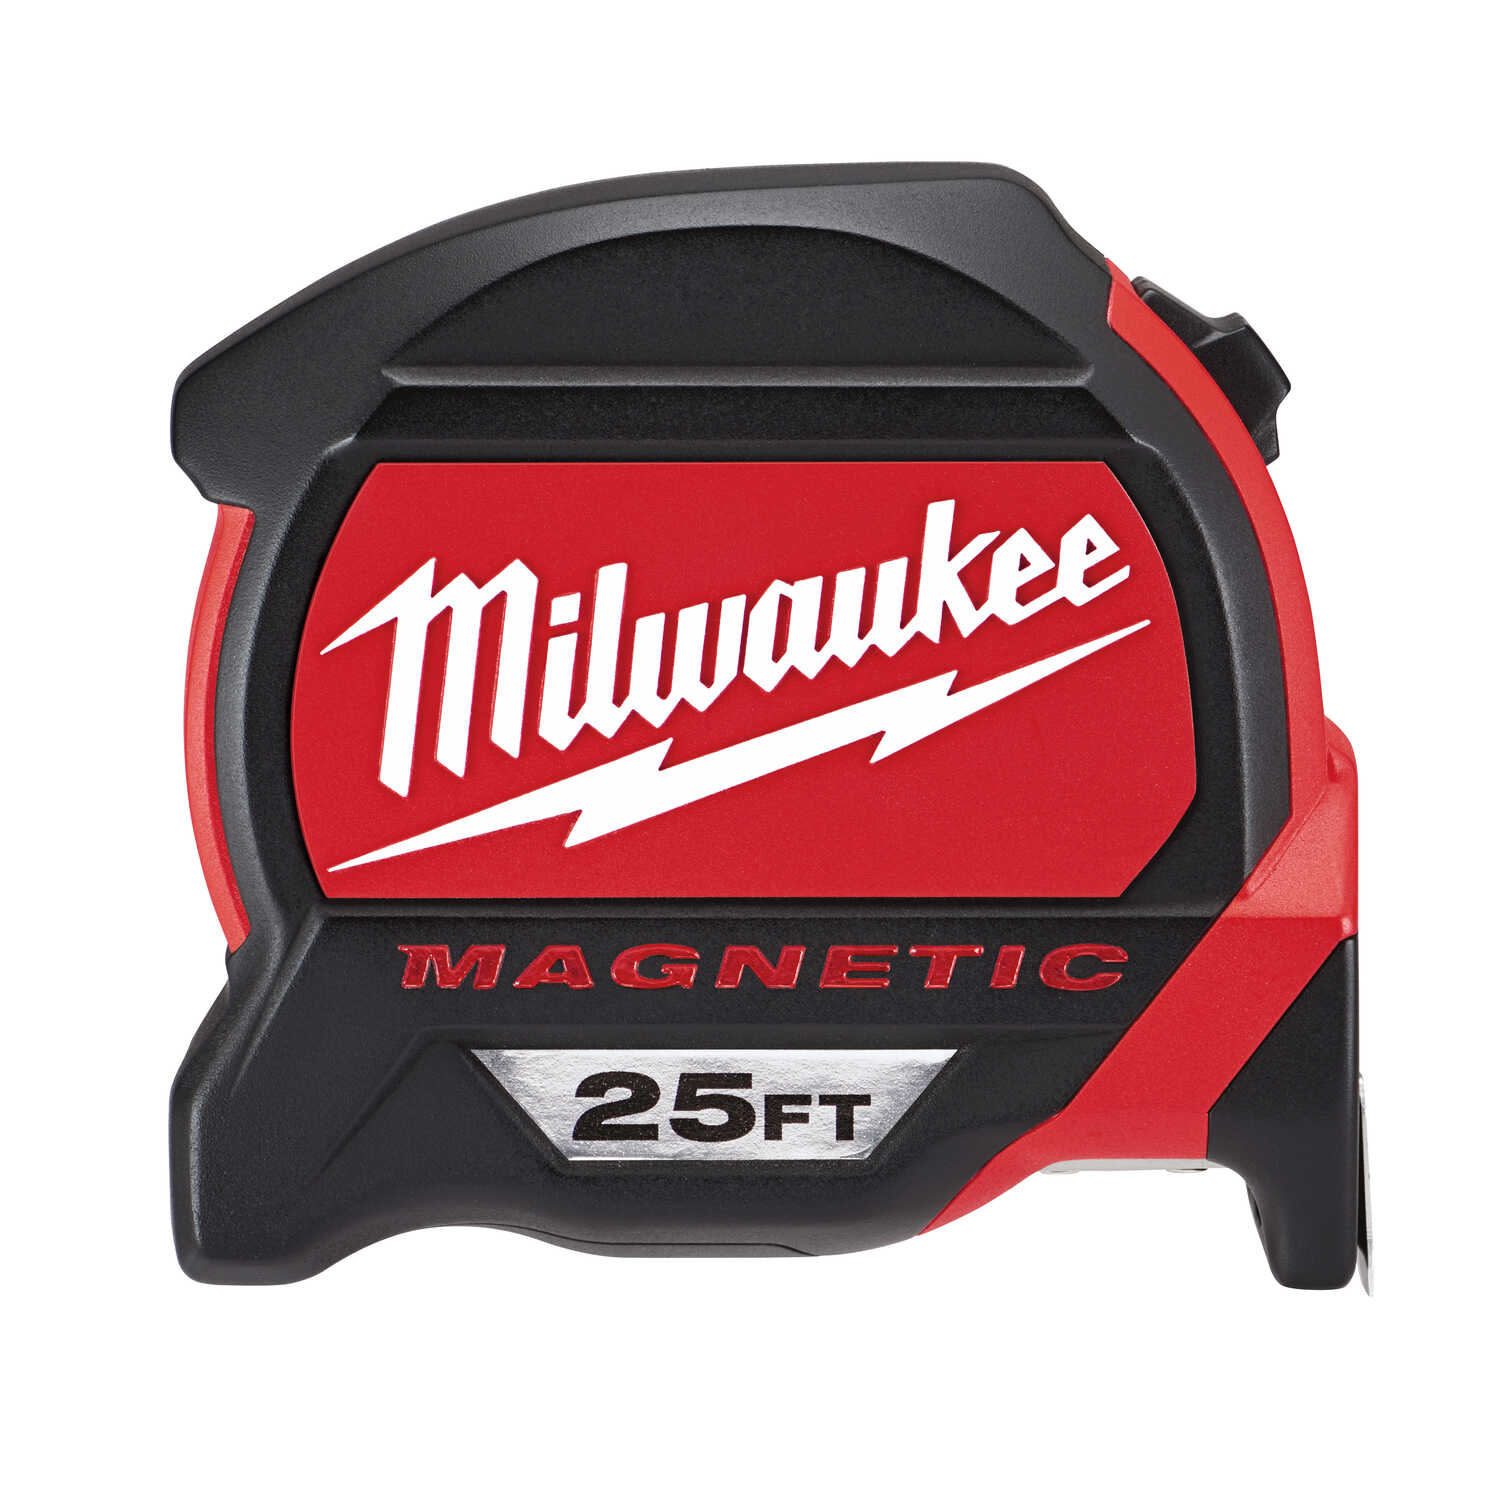 Milwaukee  25 ft. L Magnetic Tape Measure  Red/Black